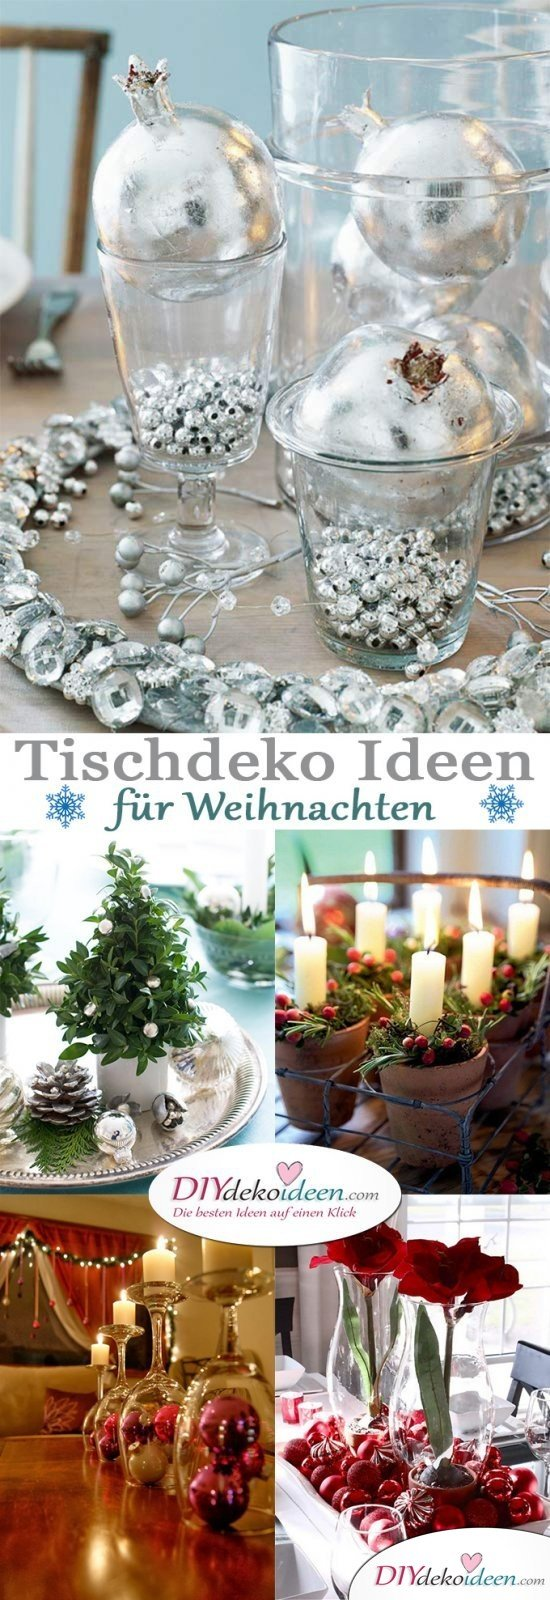 ideen zu weihnachten weihnachtliche tischdeko 60 ausgefallene tischdeko ideen tischdeko zu. Black Bedroom Furniture Sets. Home Design Ideas